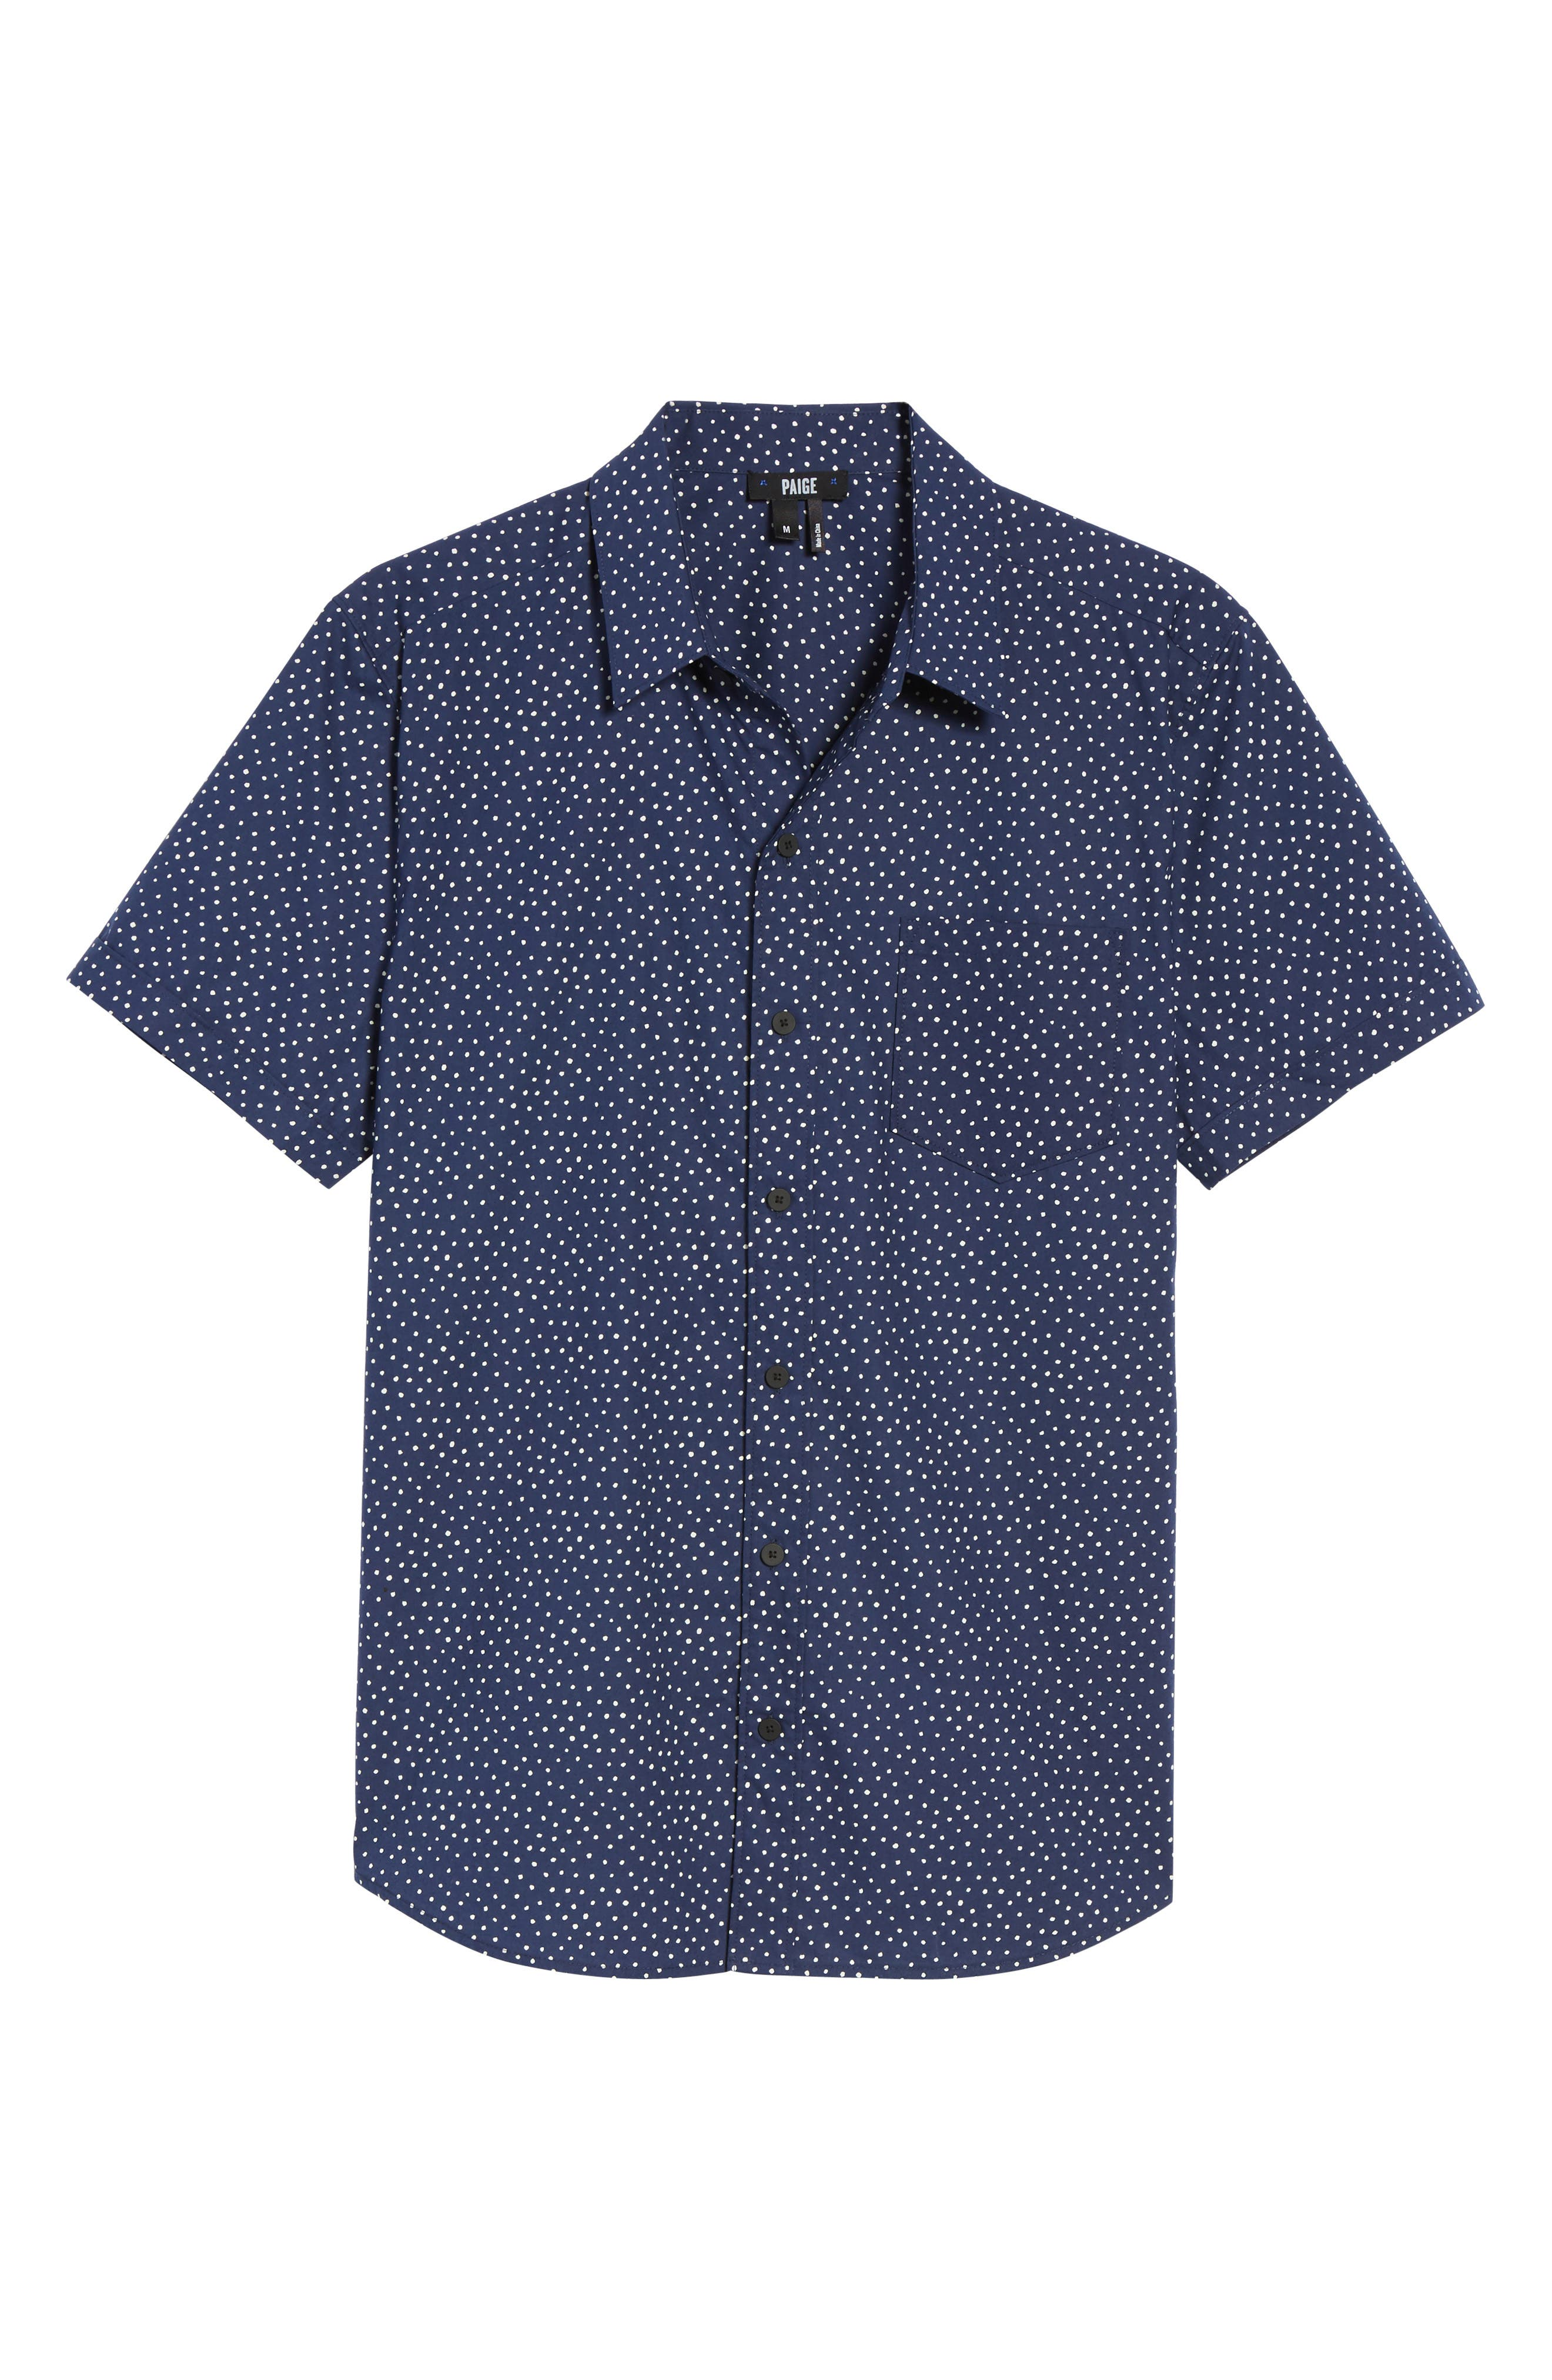 Alternate Image 5  - PAIGE Becker Dot Print Woven Shirt